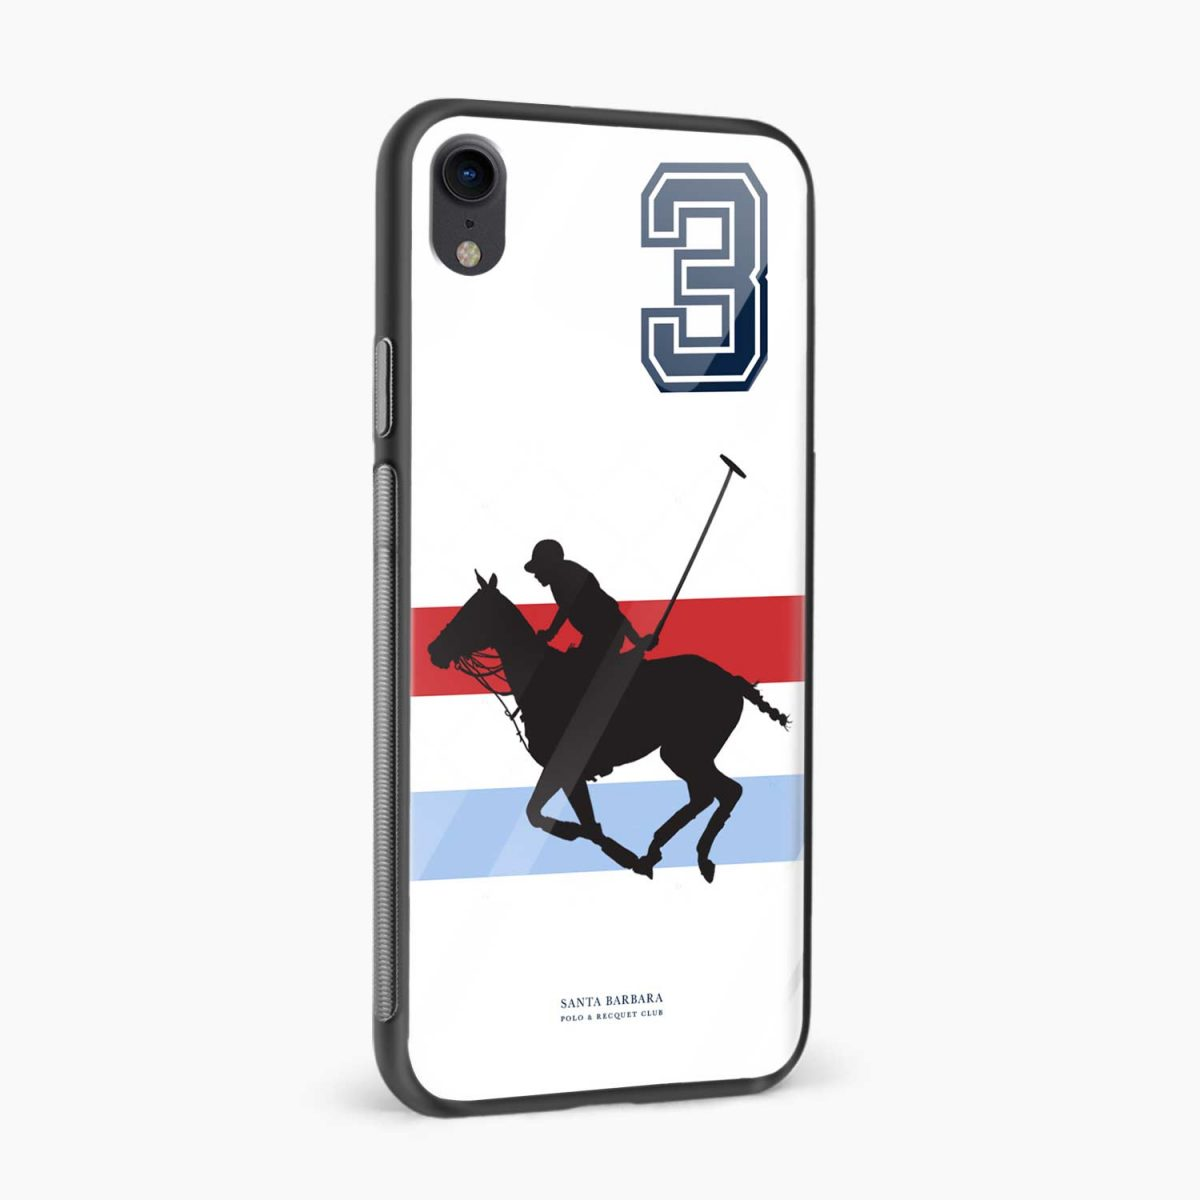 santa barbara polo apple iphone xr back cover side view